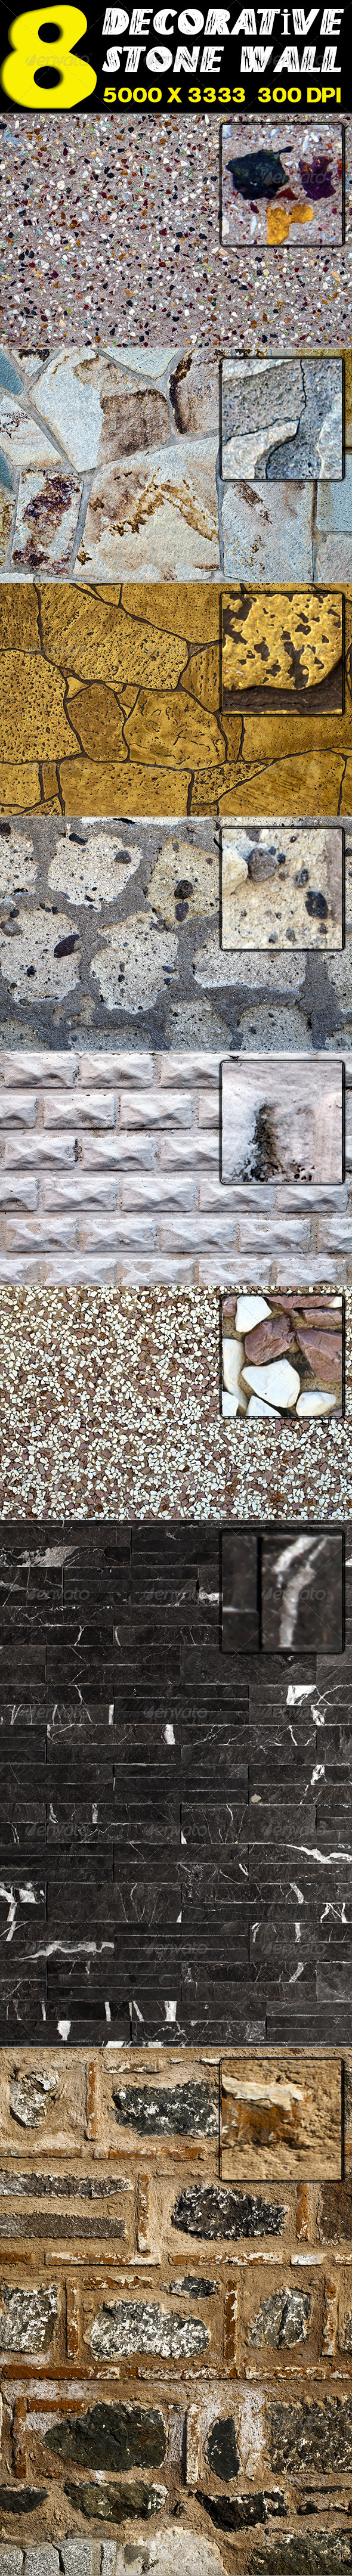 8 Decorative Stone Wall - Stone Textures